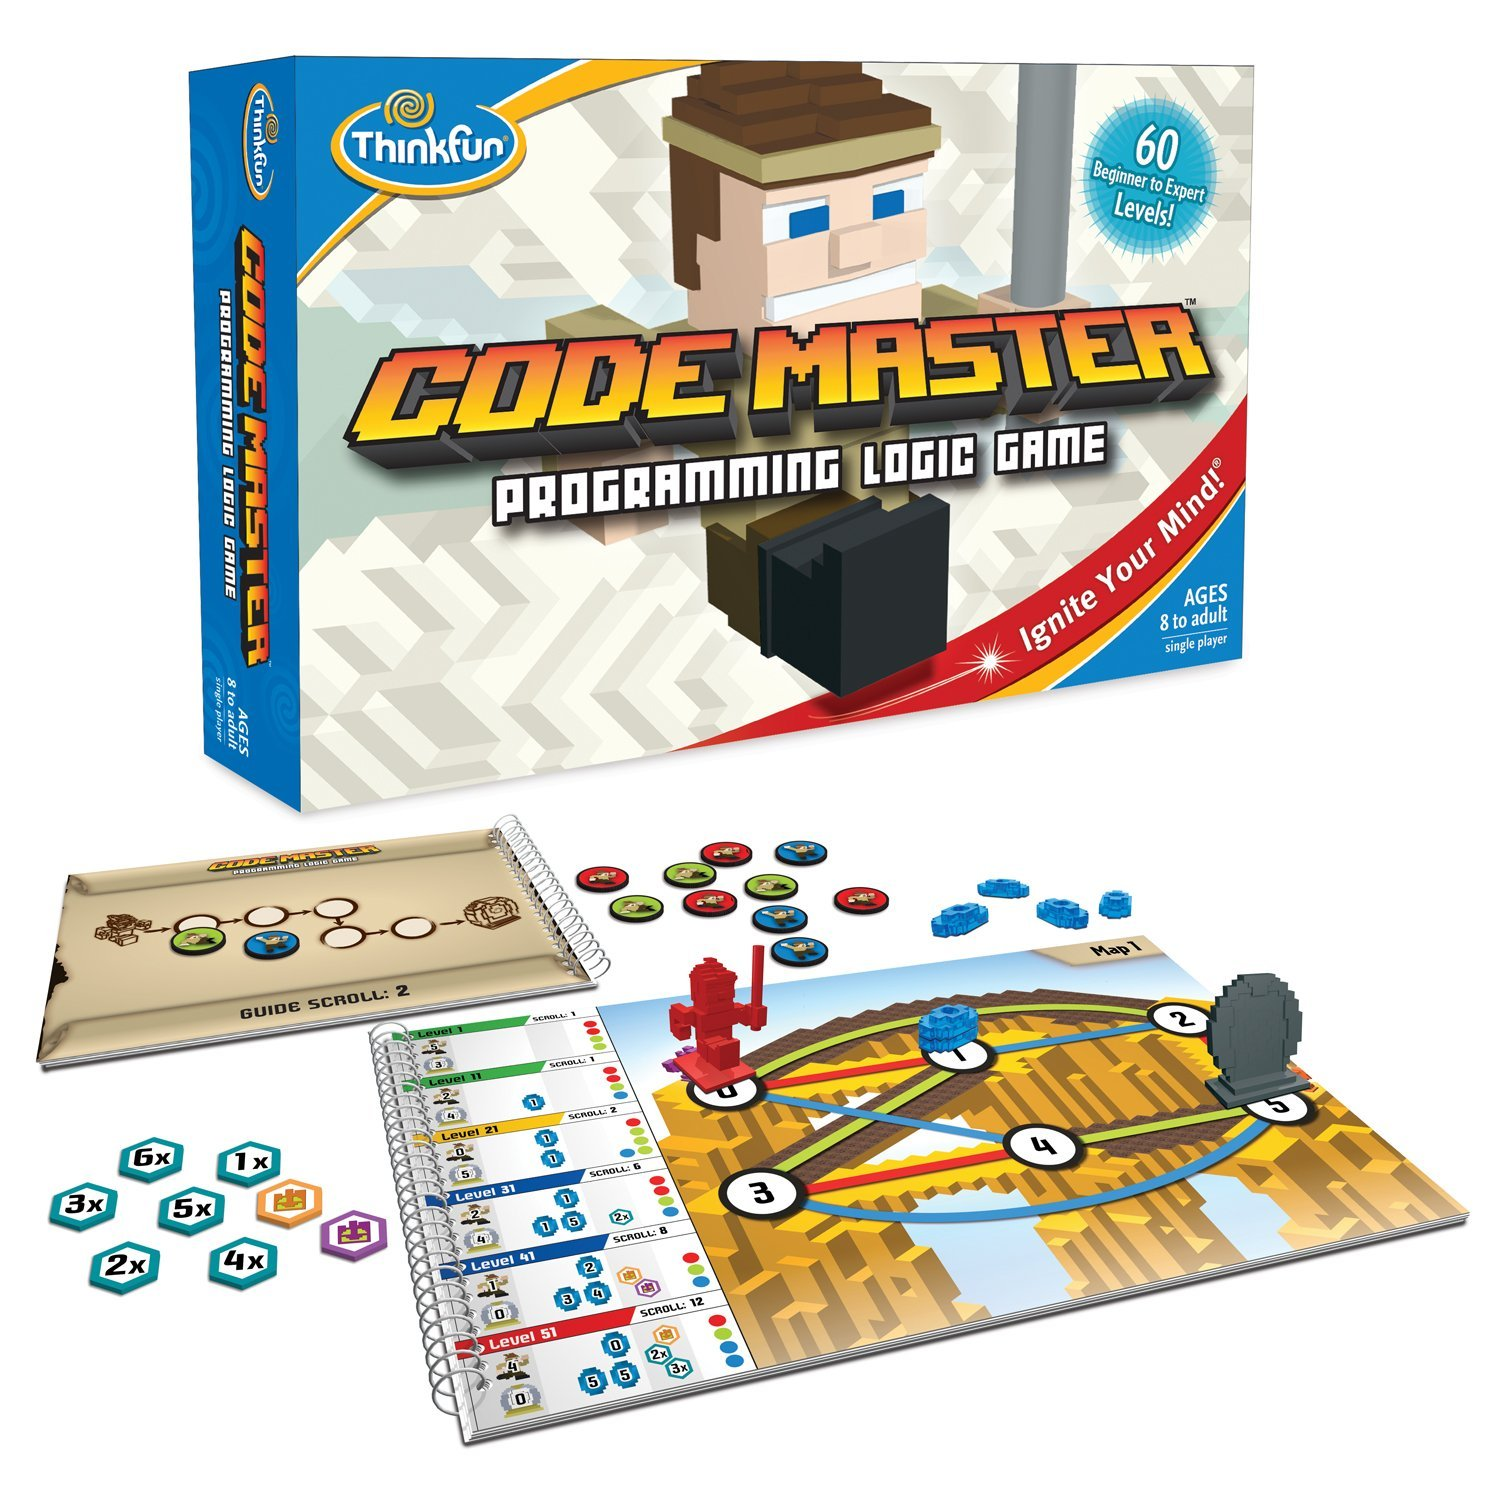 STEM Toys for Nine Year Olds Code Master